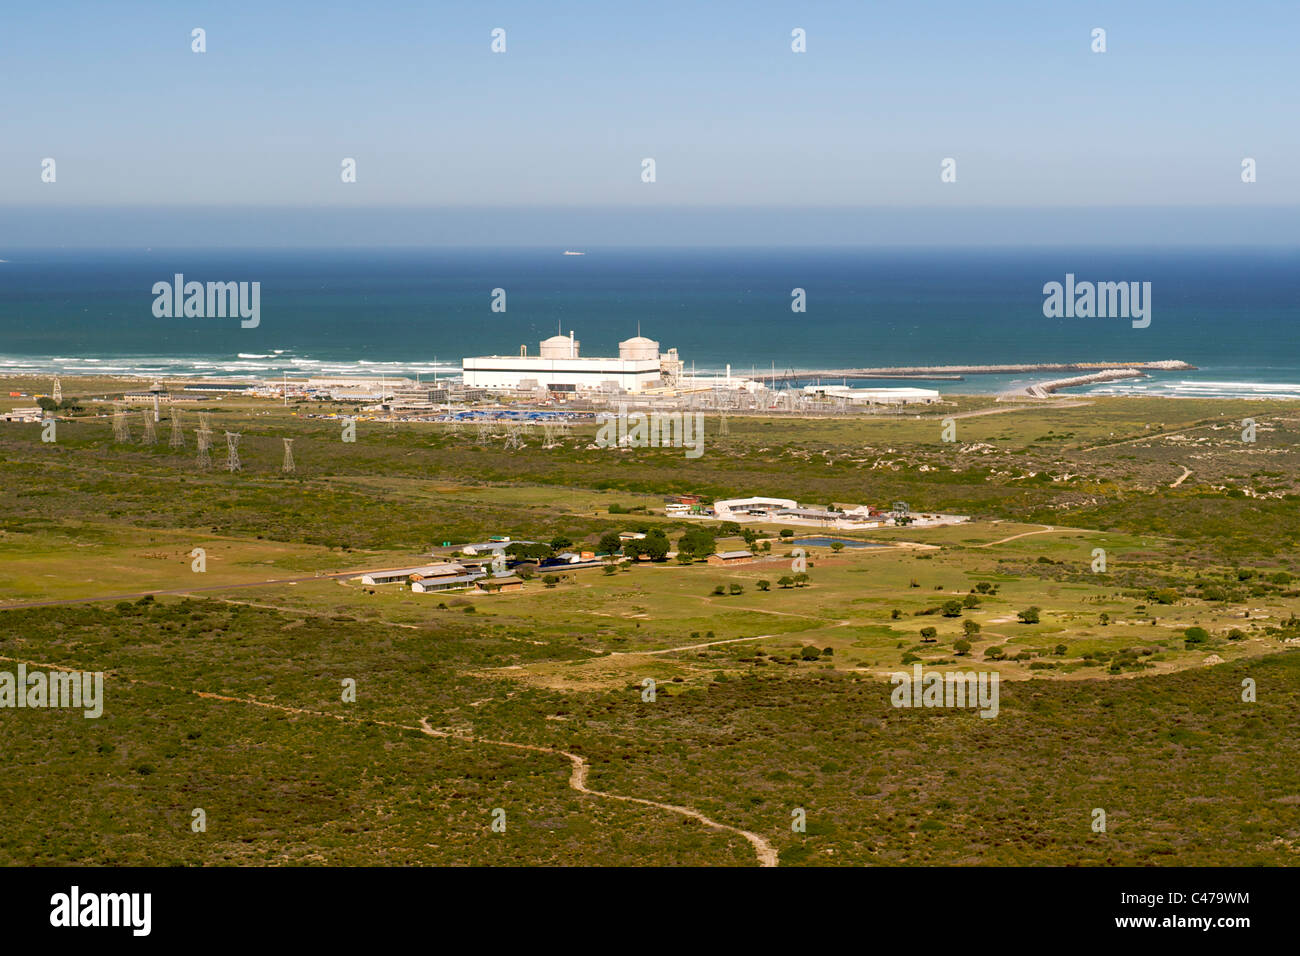 Aerial view of the Koeberg nuclear power station on the west coast north of Cape Town in South Africa. - Stock Image